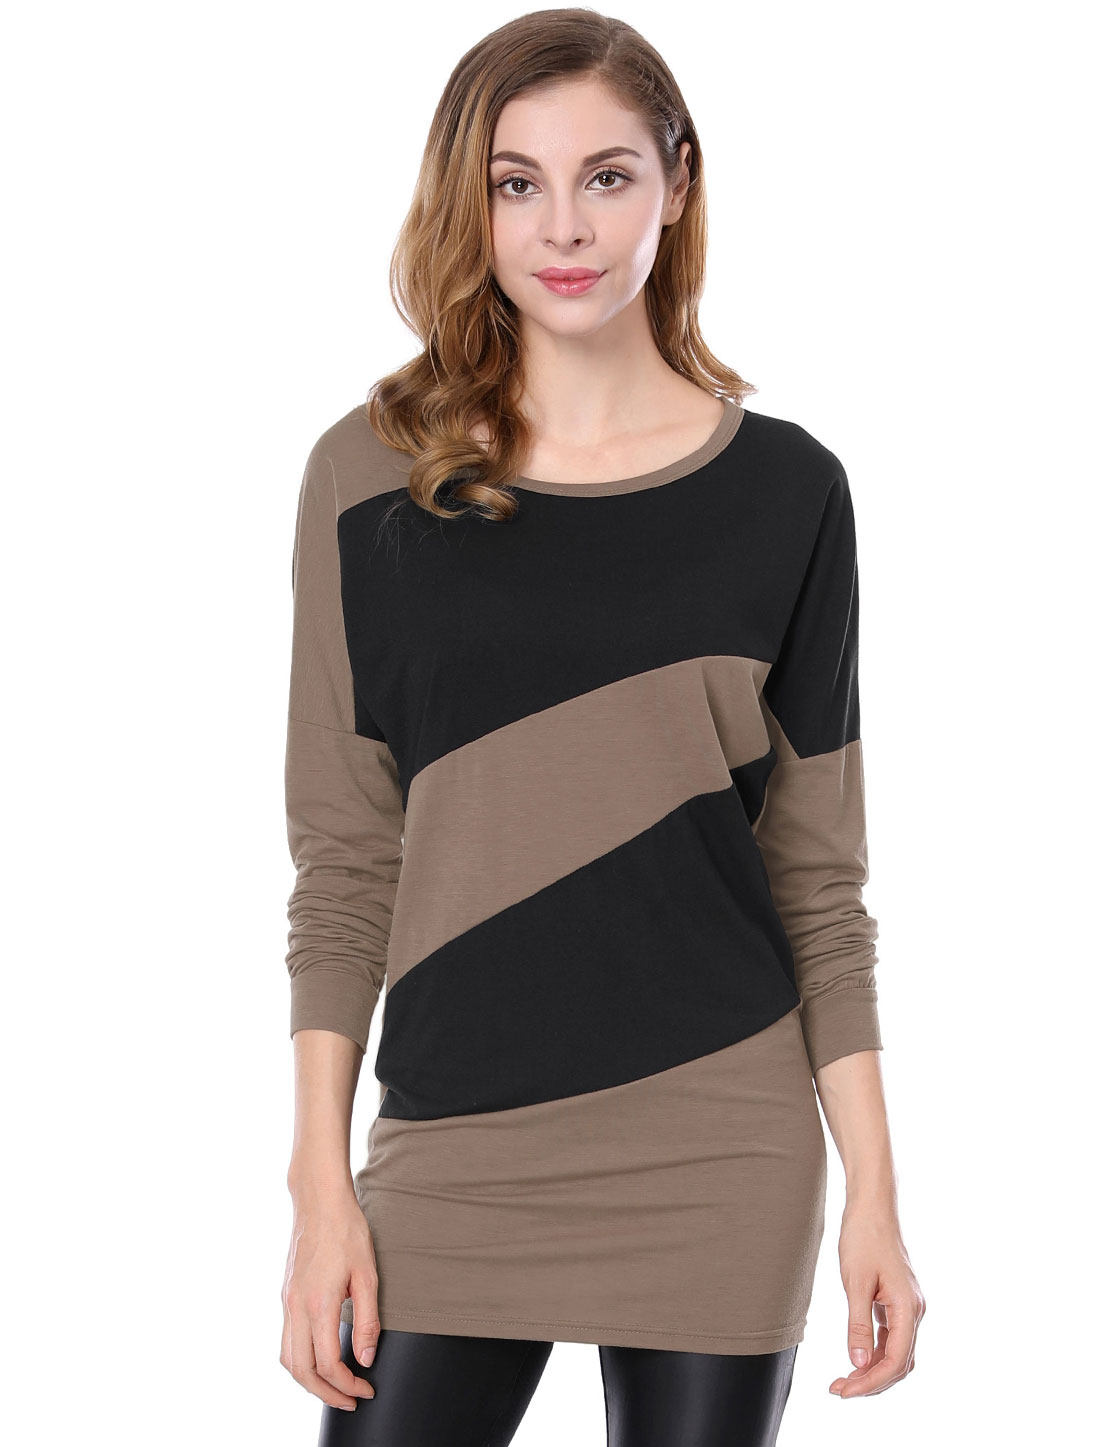 Women Chic Light Coffee Black Two-Color Striped Loose Casual Tops XL